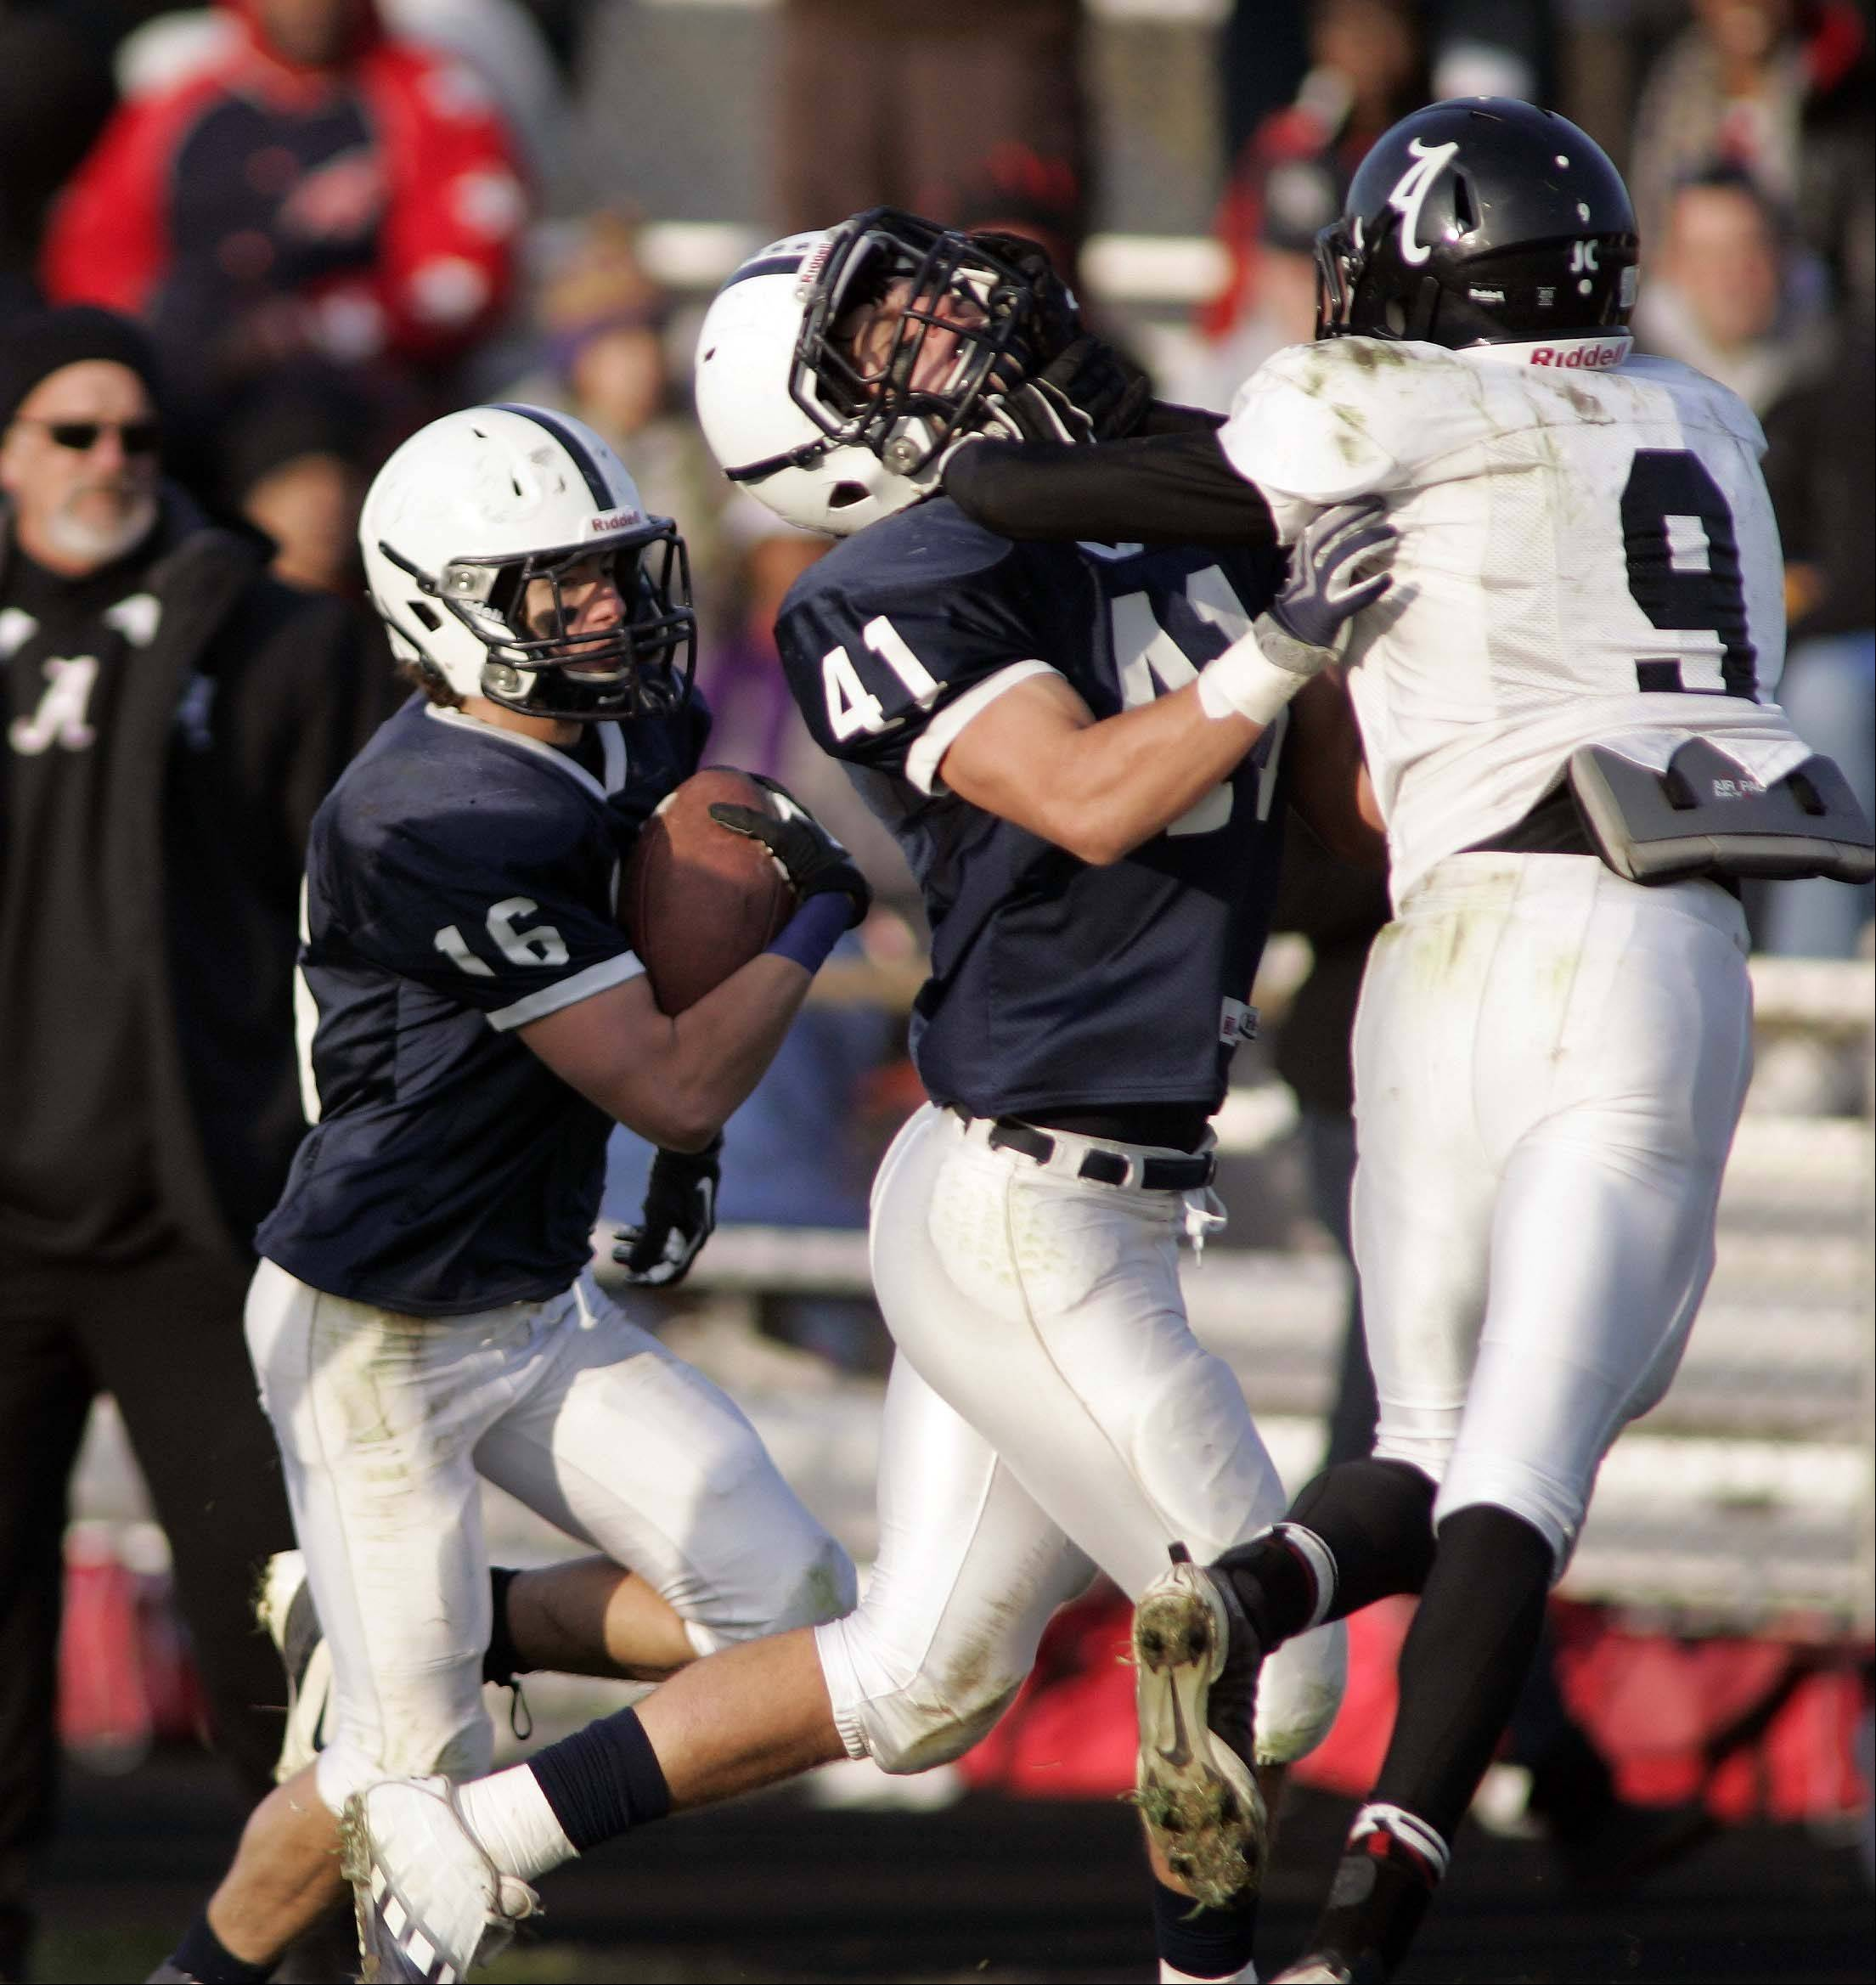 Cary-Grove's Zach Marszal (41) puts a block on Rockford Auburn's Corey Jefferson (9) to give Cary-Grove's Kaene Connington some running room during the first round of the Class 6A playoffs. Cary-Grove hosts Crystal Lake Centrak Saturday at 1 p.m. in the quarterfinal round.